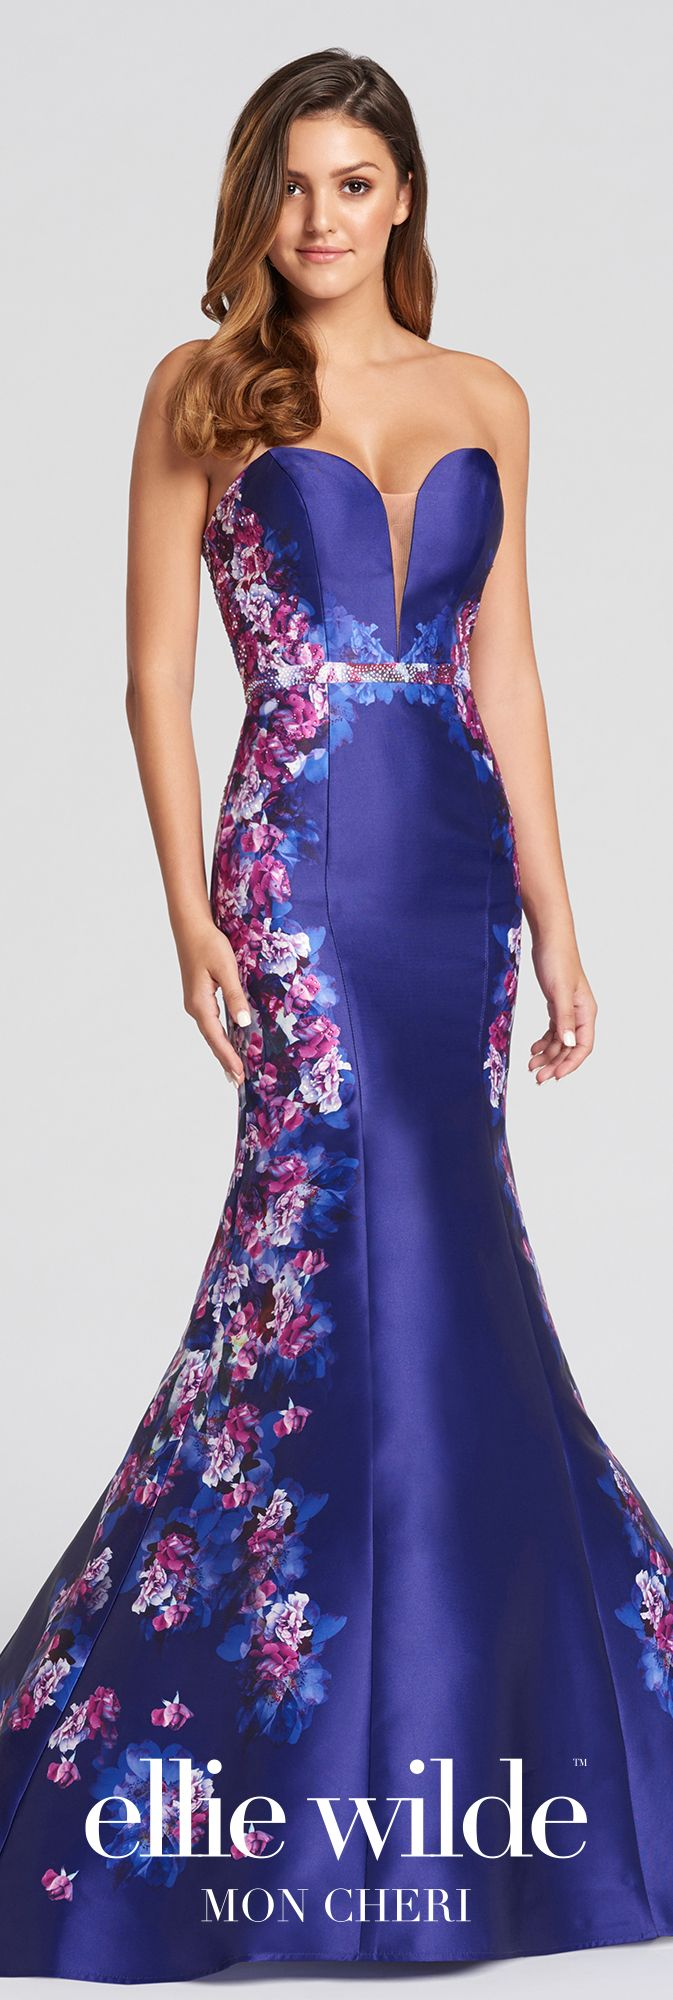 Strapless mikado fit u flare prom dress with a floral skirt